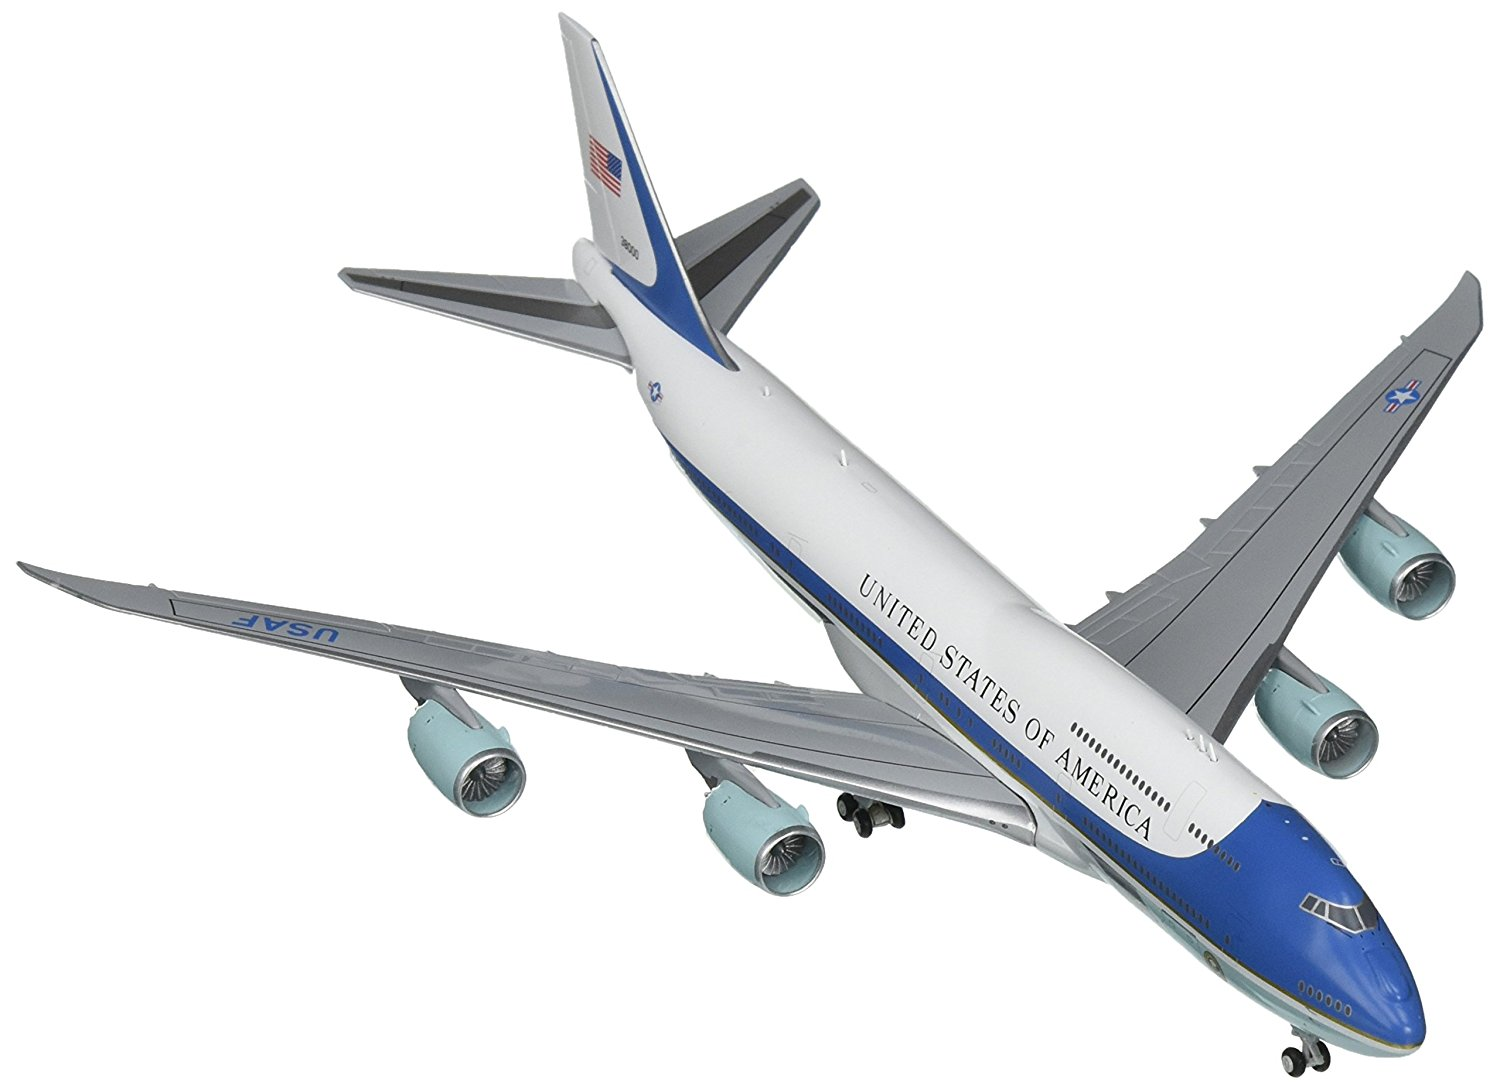 Gemini Jets United States Air Force B747-8i 'Air Force One' 38000 1:400 Scale Diecast Model Airplane by Gemini